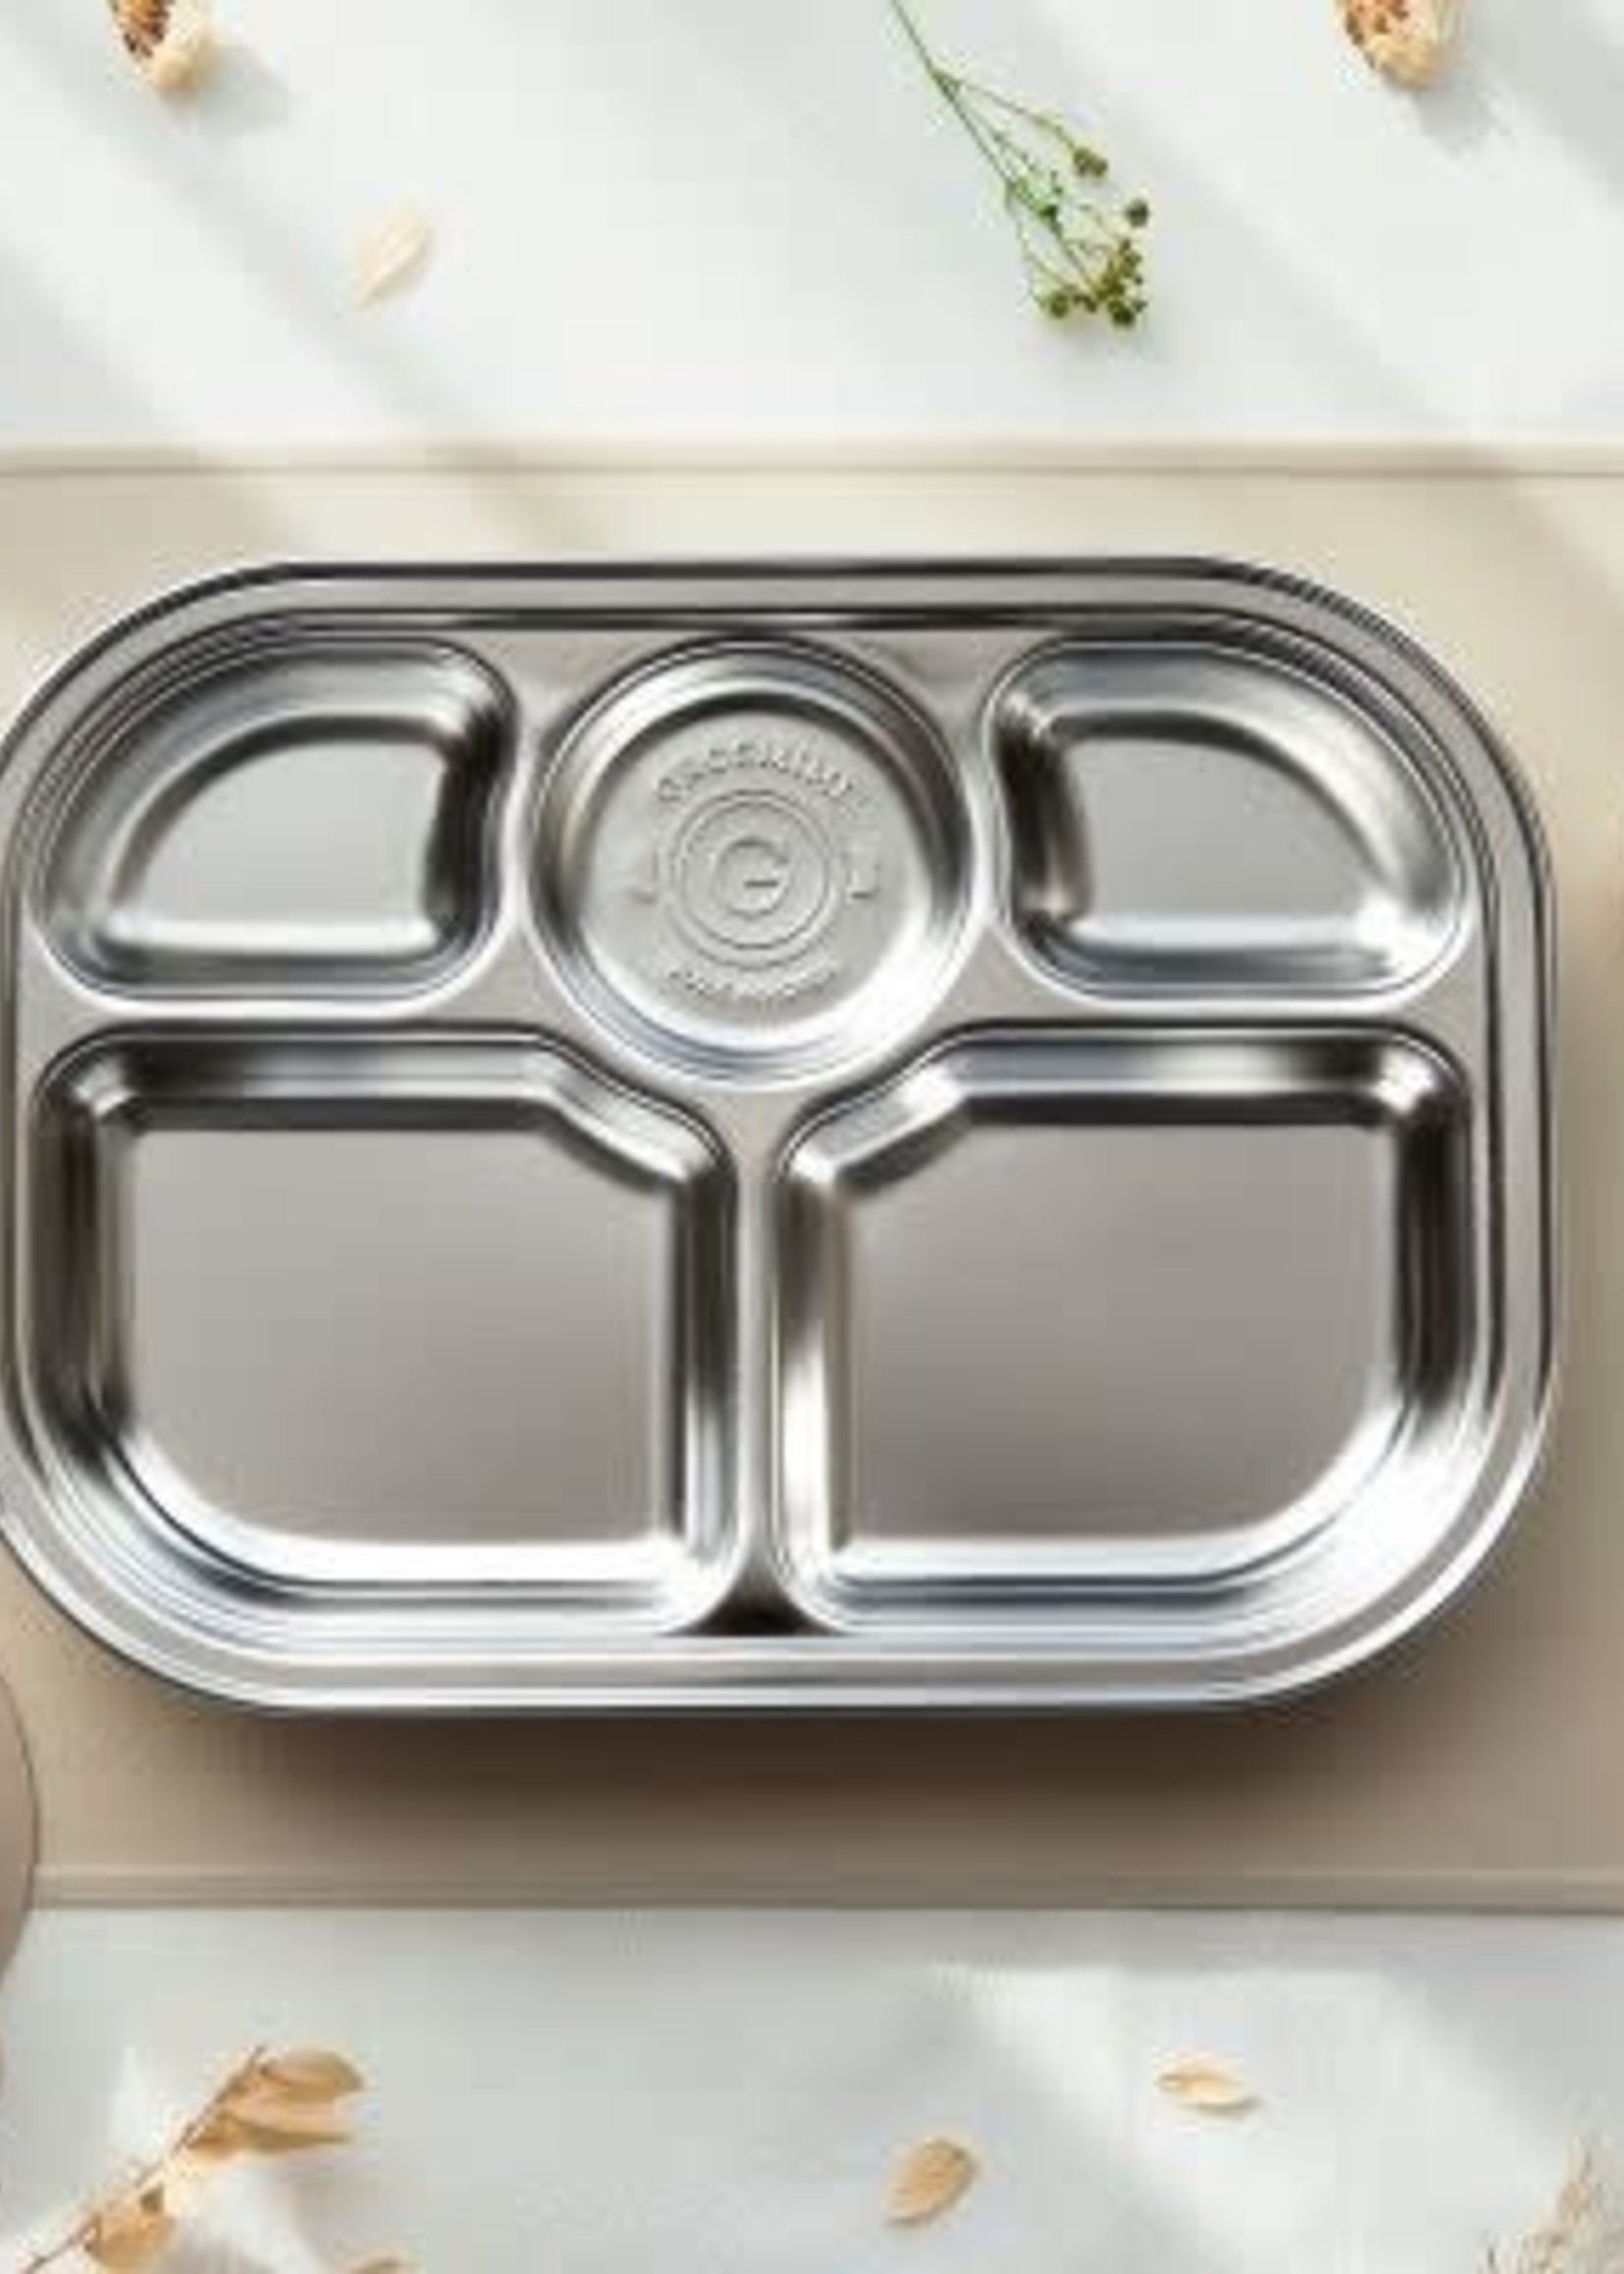 Grosmimi Grosmimi Stainless Steel Food Tray  5 Compartments ( cover & Suction plate included)